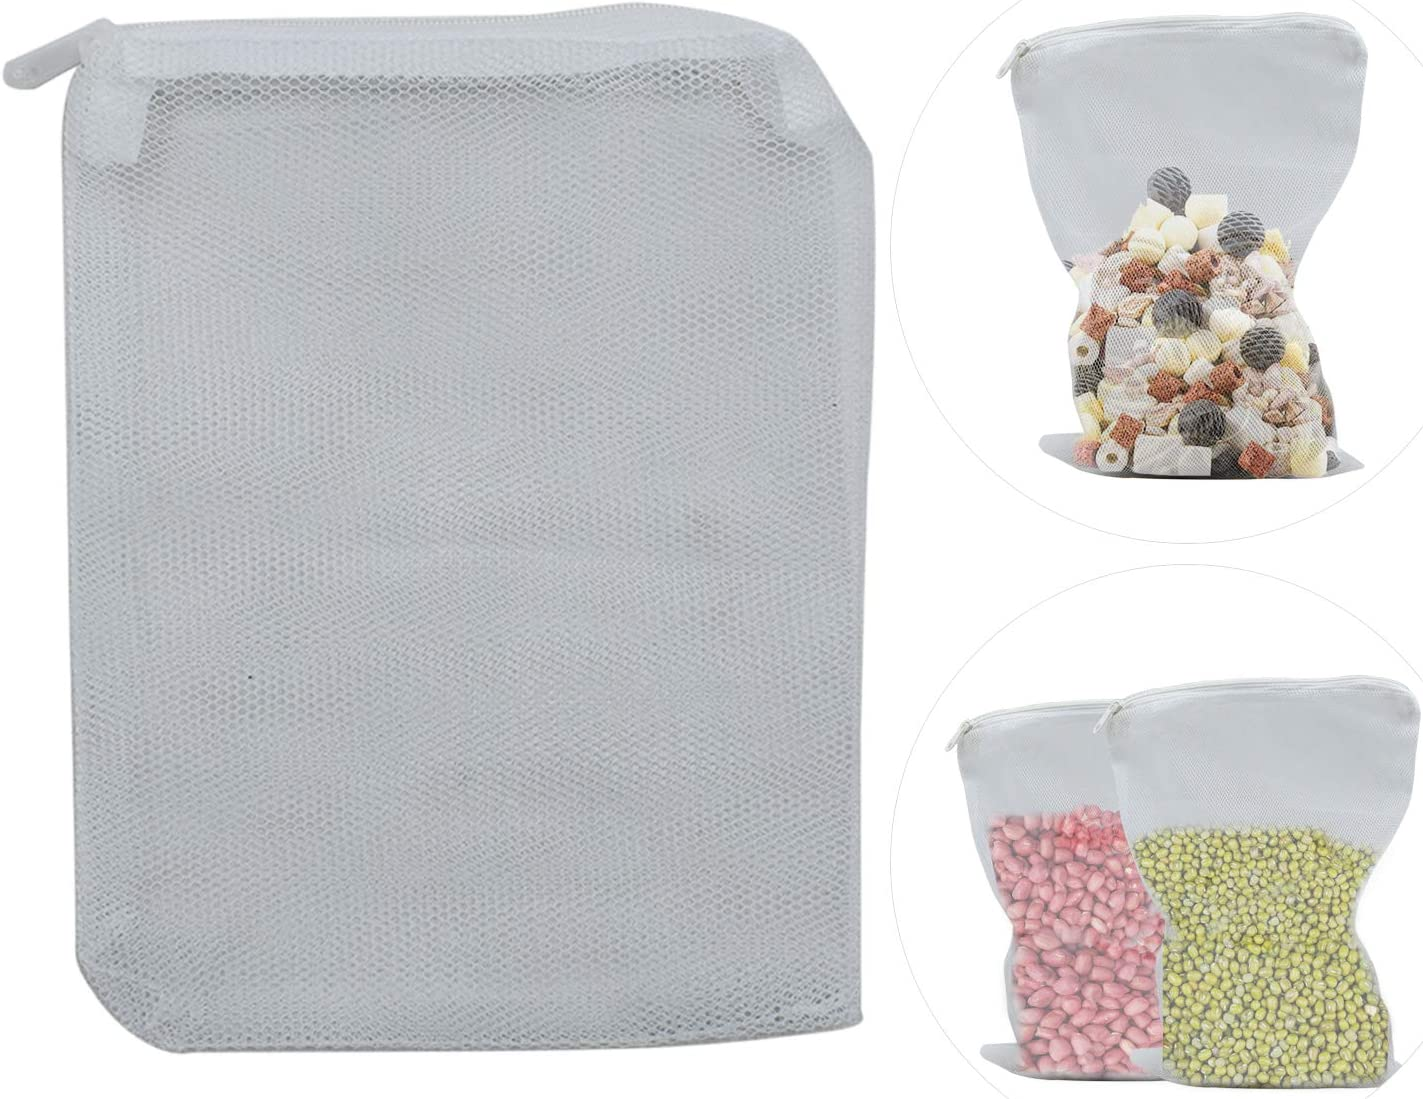 4 Size of Set White Aquarium Filter Net Bags Nylon Mesh Bags with Plastic Zipper Fish Tank Net Bags Food Storage Bag for Pellet Activated Carbon,Bio Balls,Ceramic Rings,Biospheres